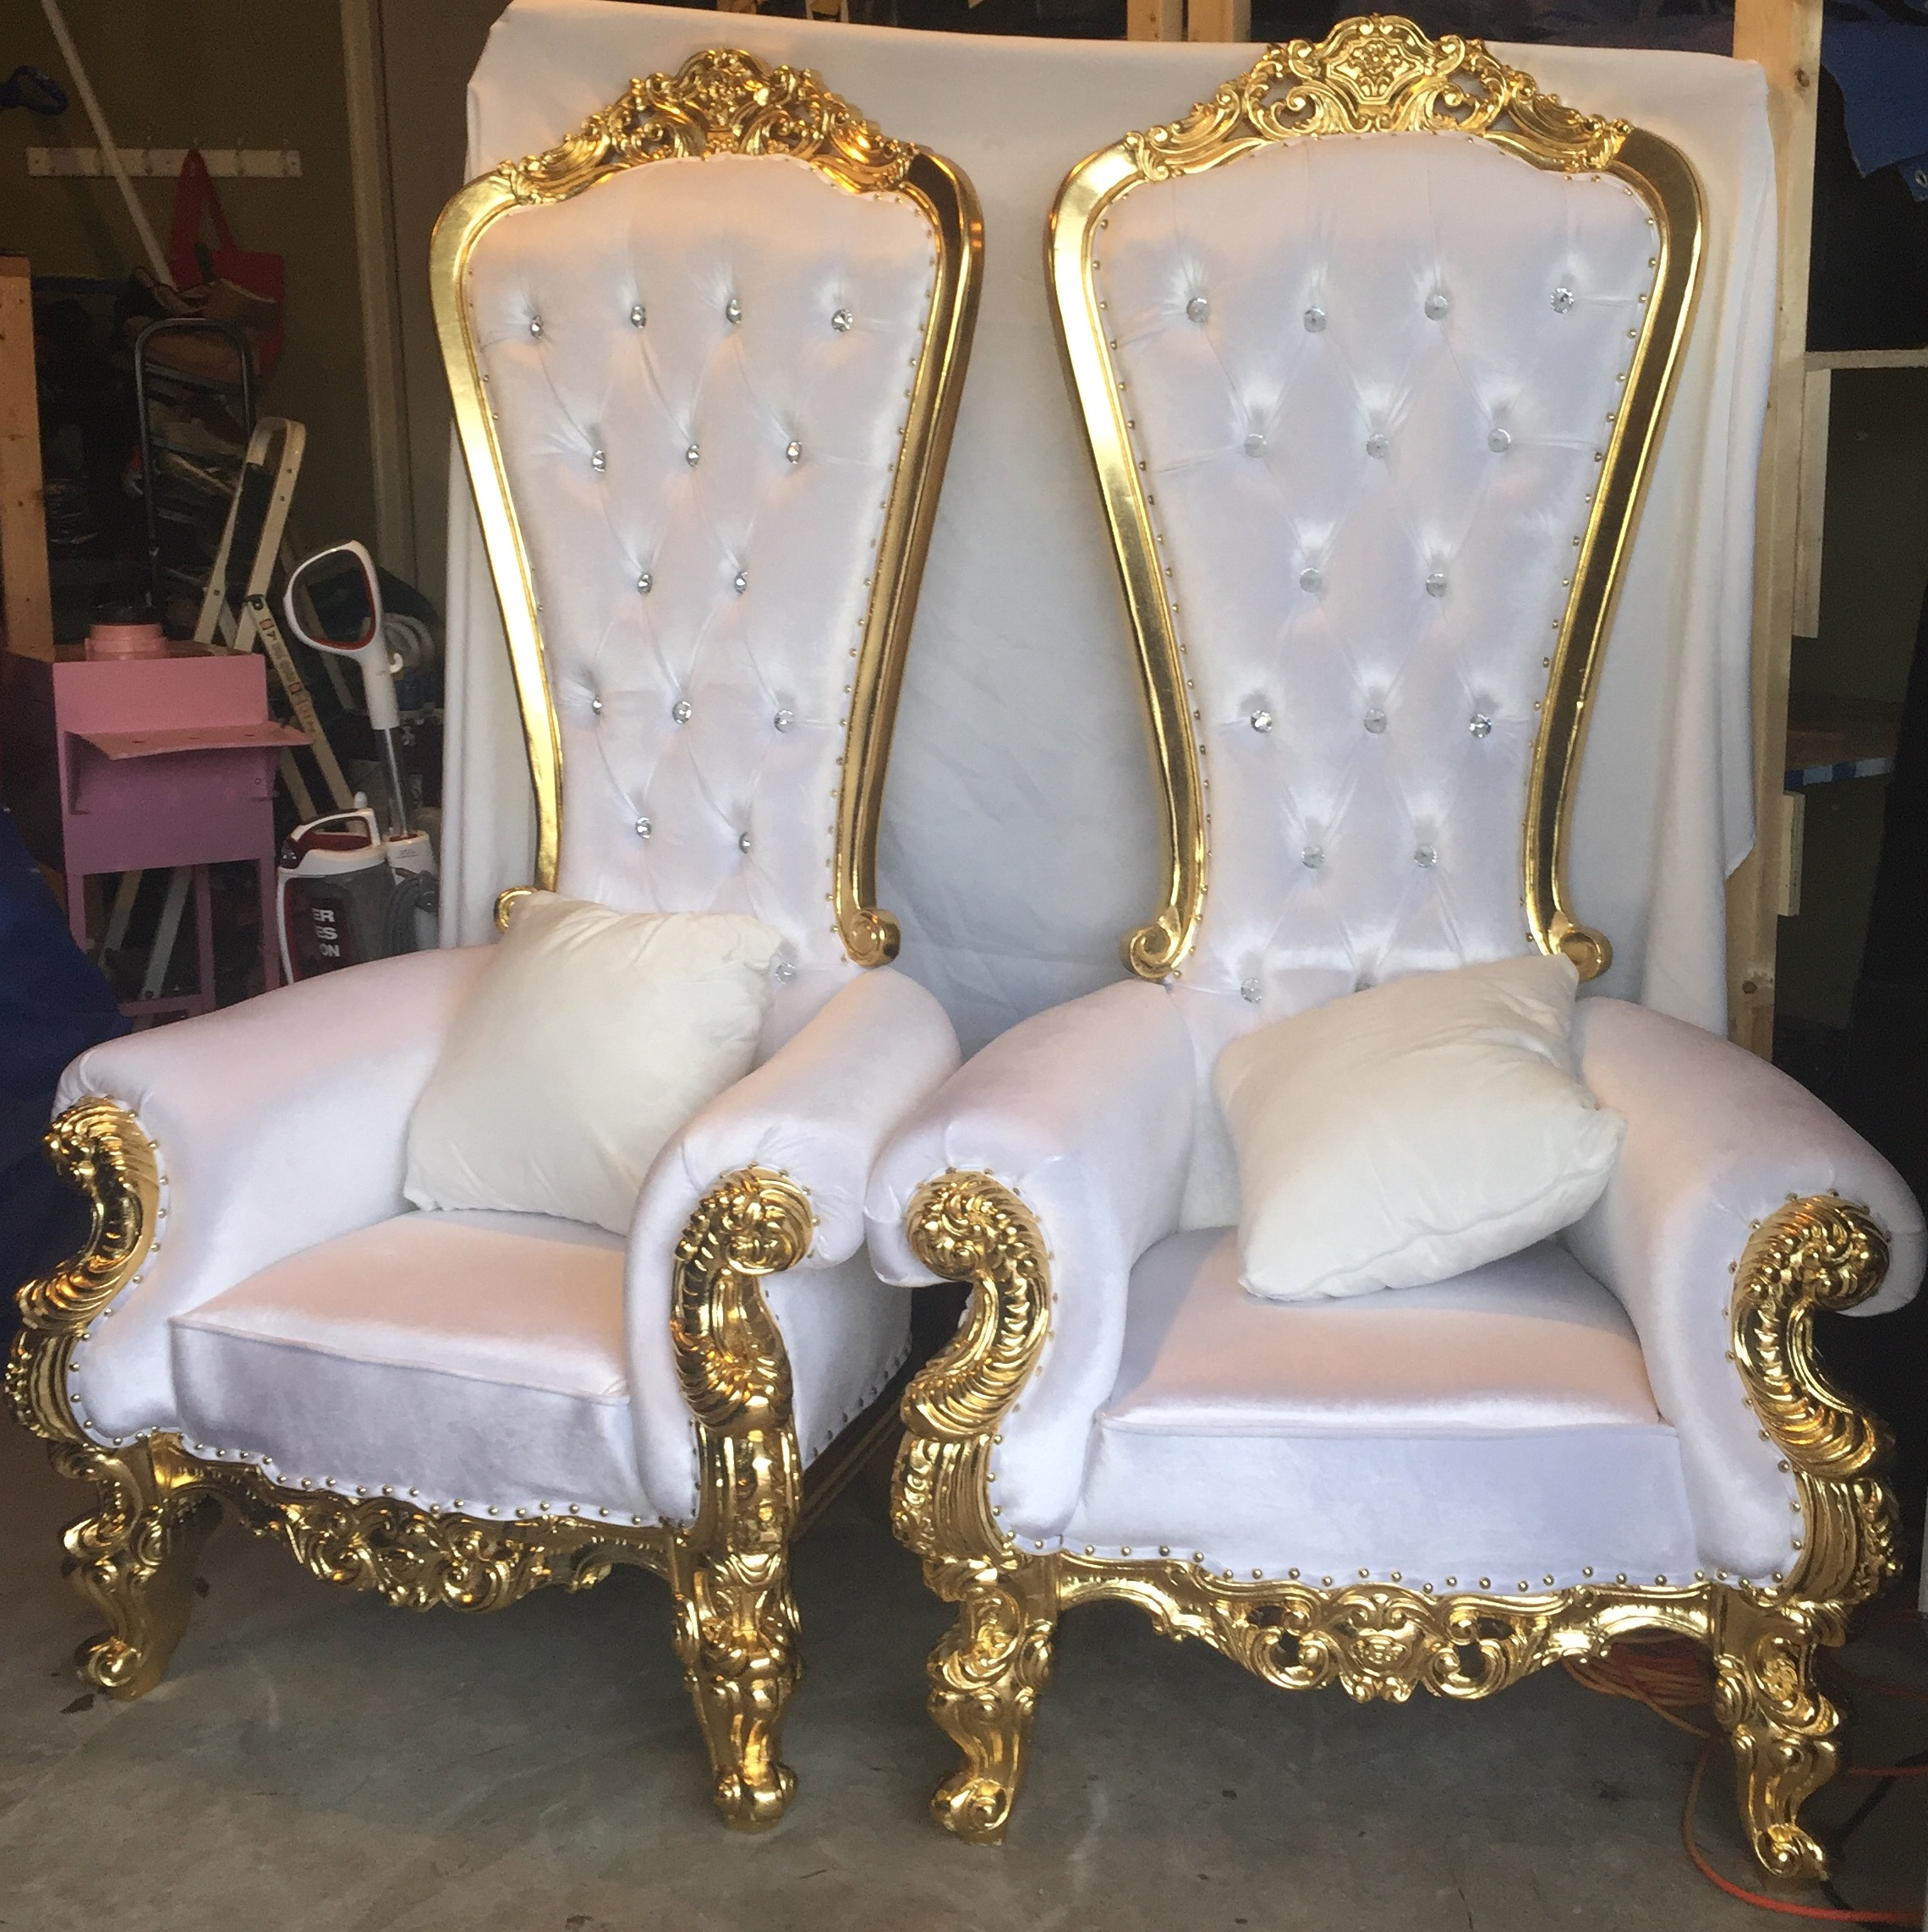 King and queen chairs & HMS Party Rental LLC Chairs